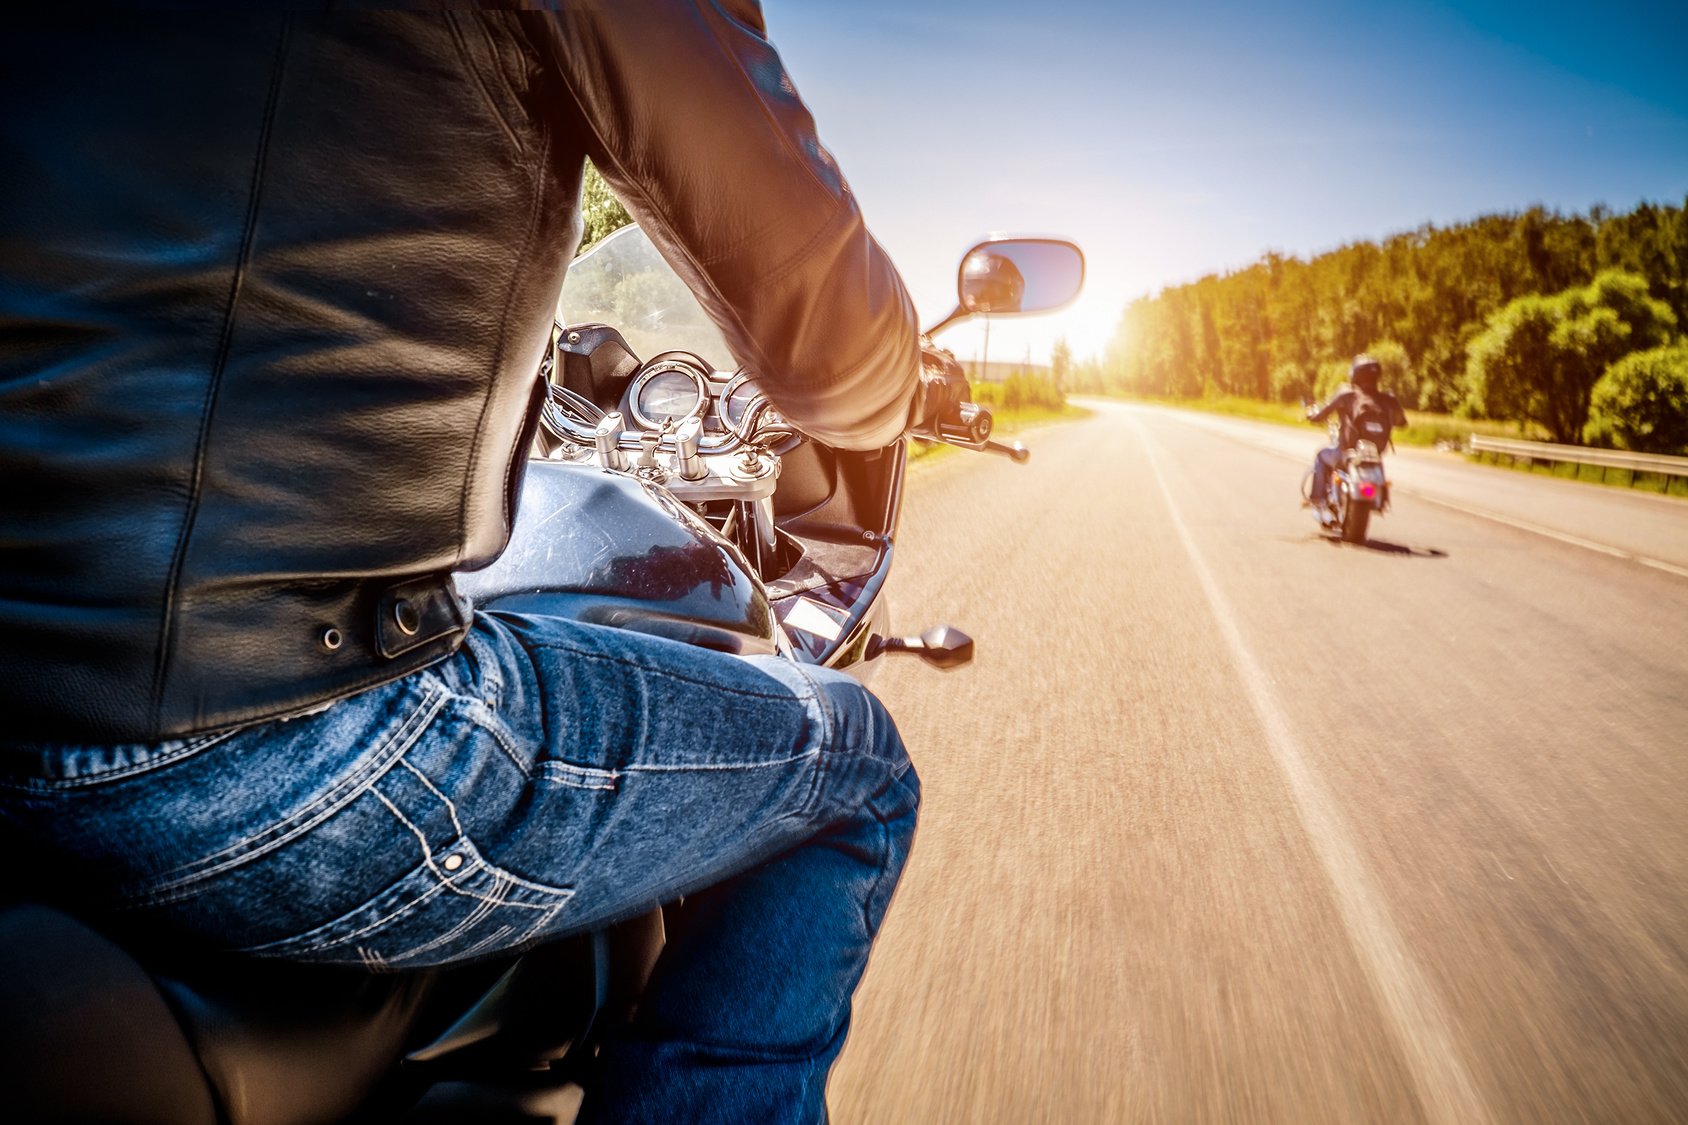 Safely Enjoy Your Next Motorcycle Trip